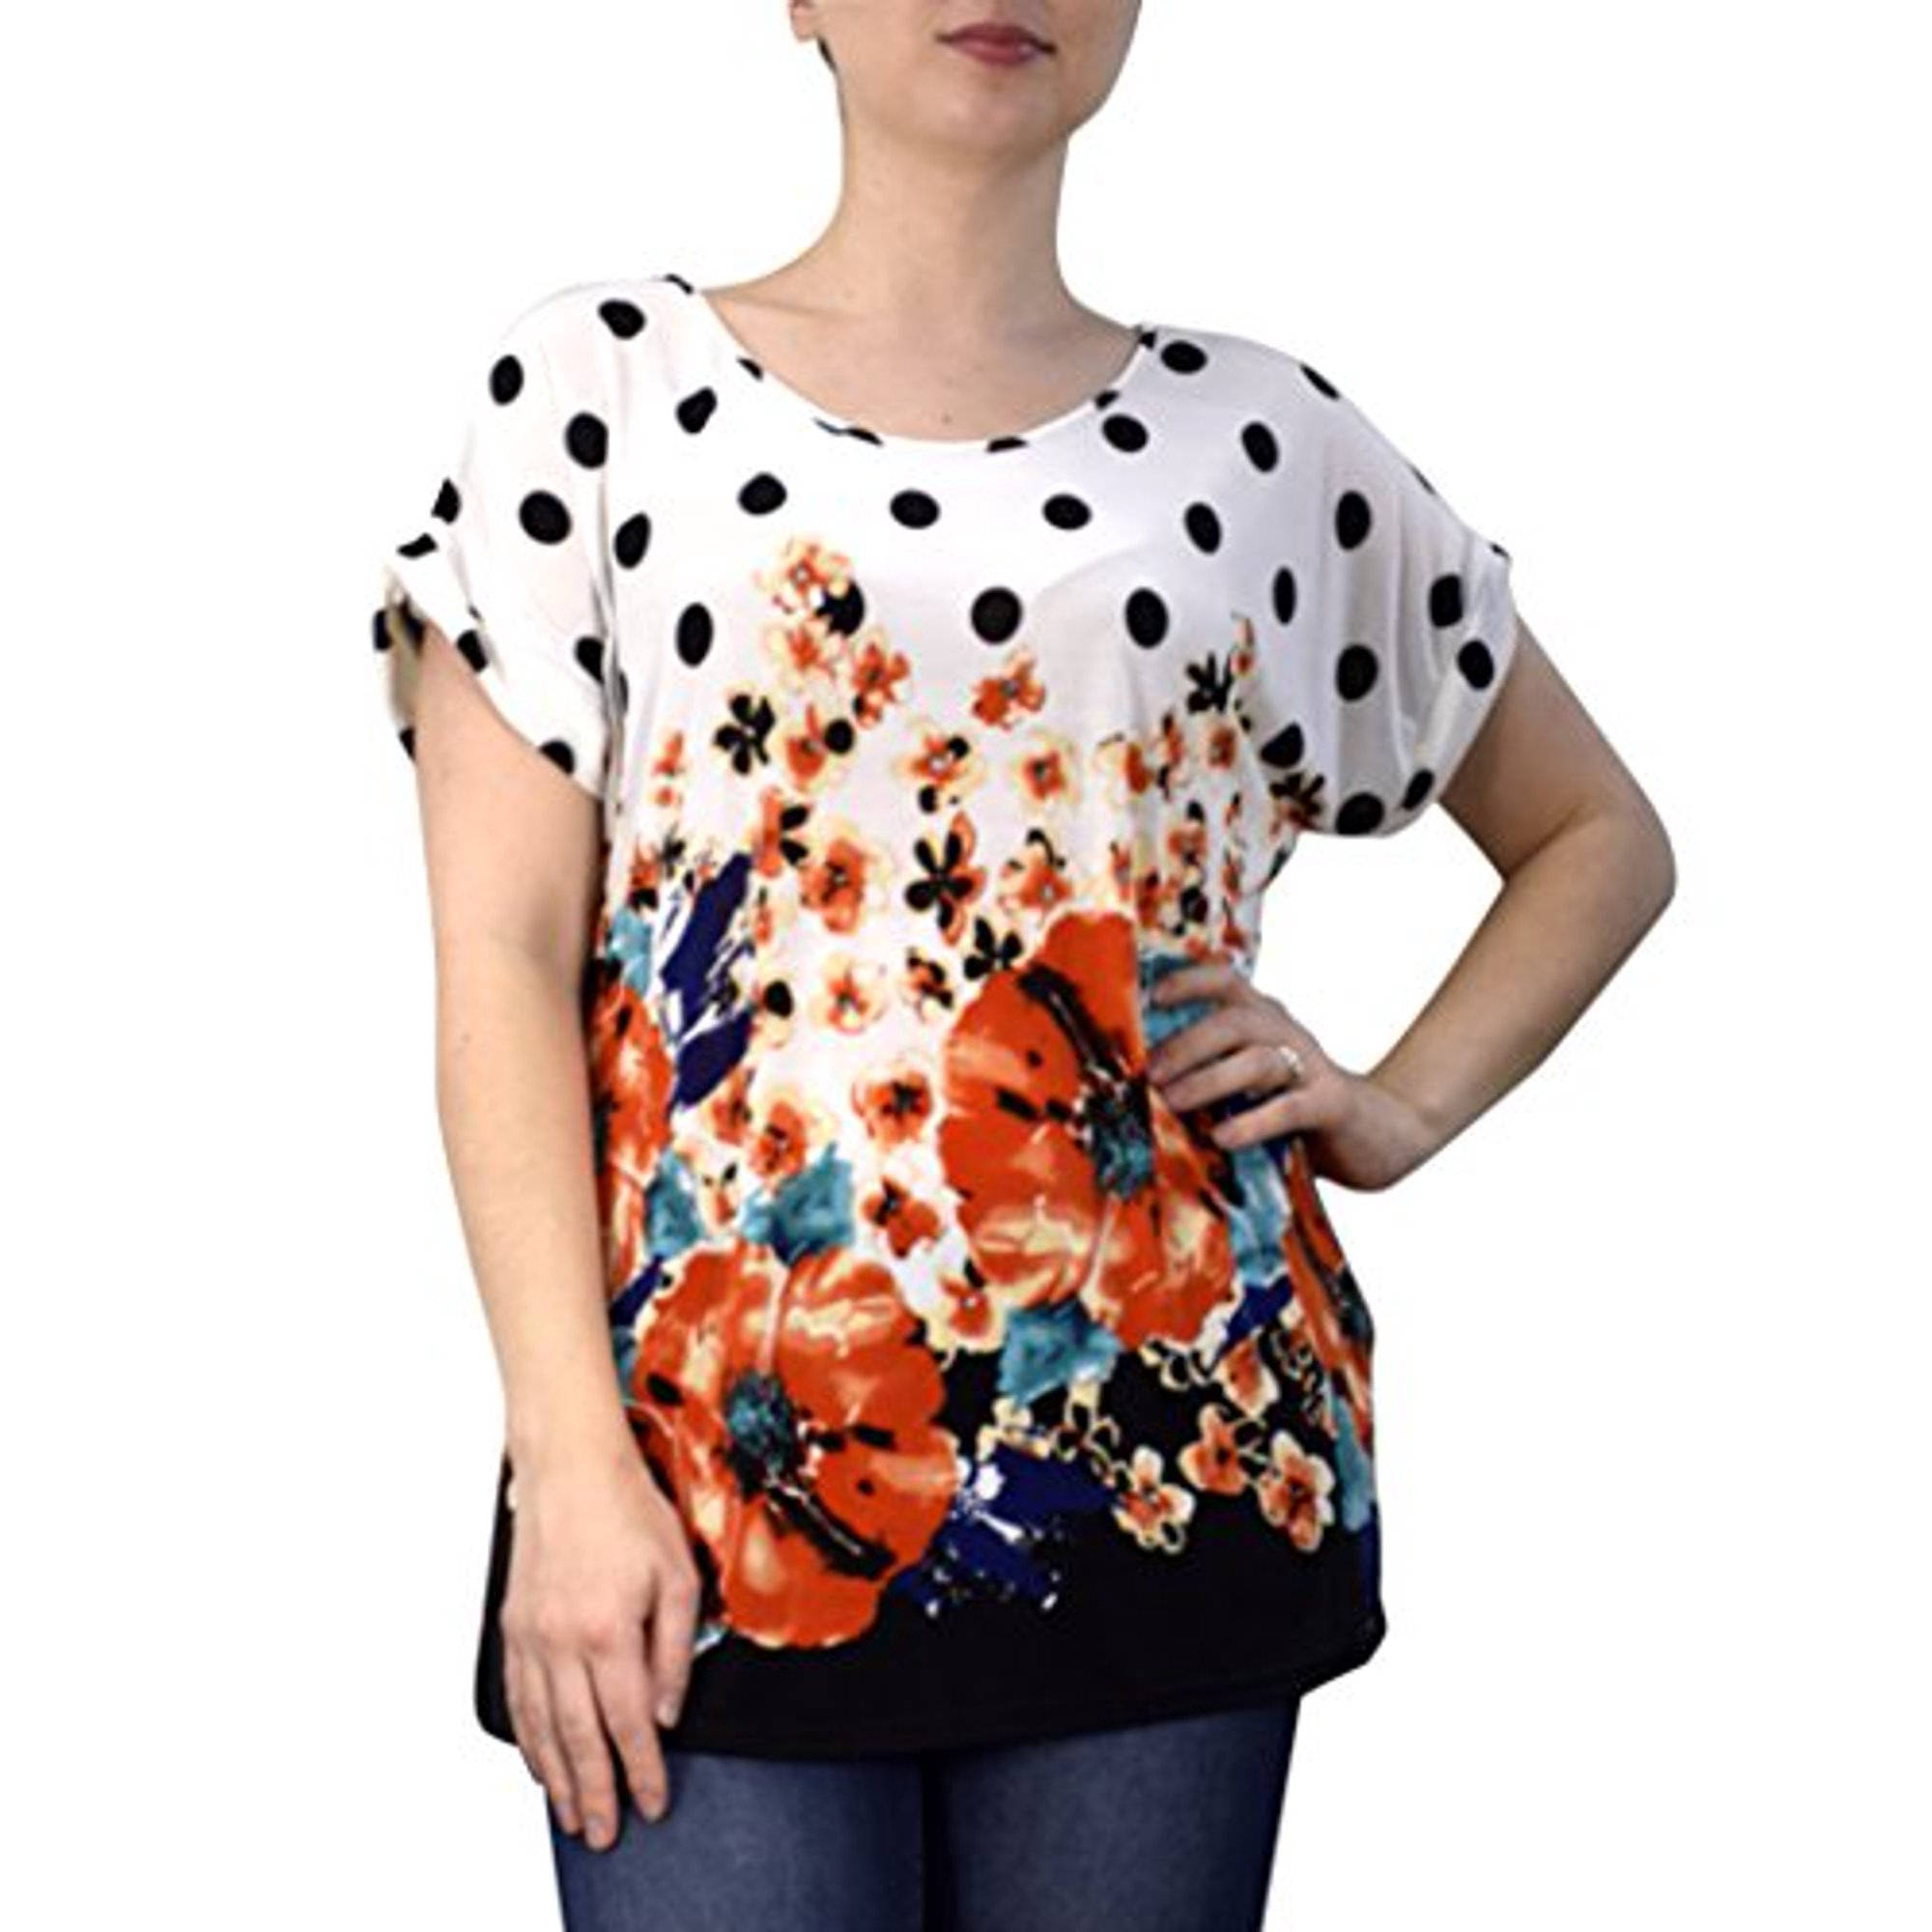 Peach Couture Boho Floral Print Light Weight Casual Summer Tops T Shirts  Blouse